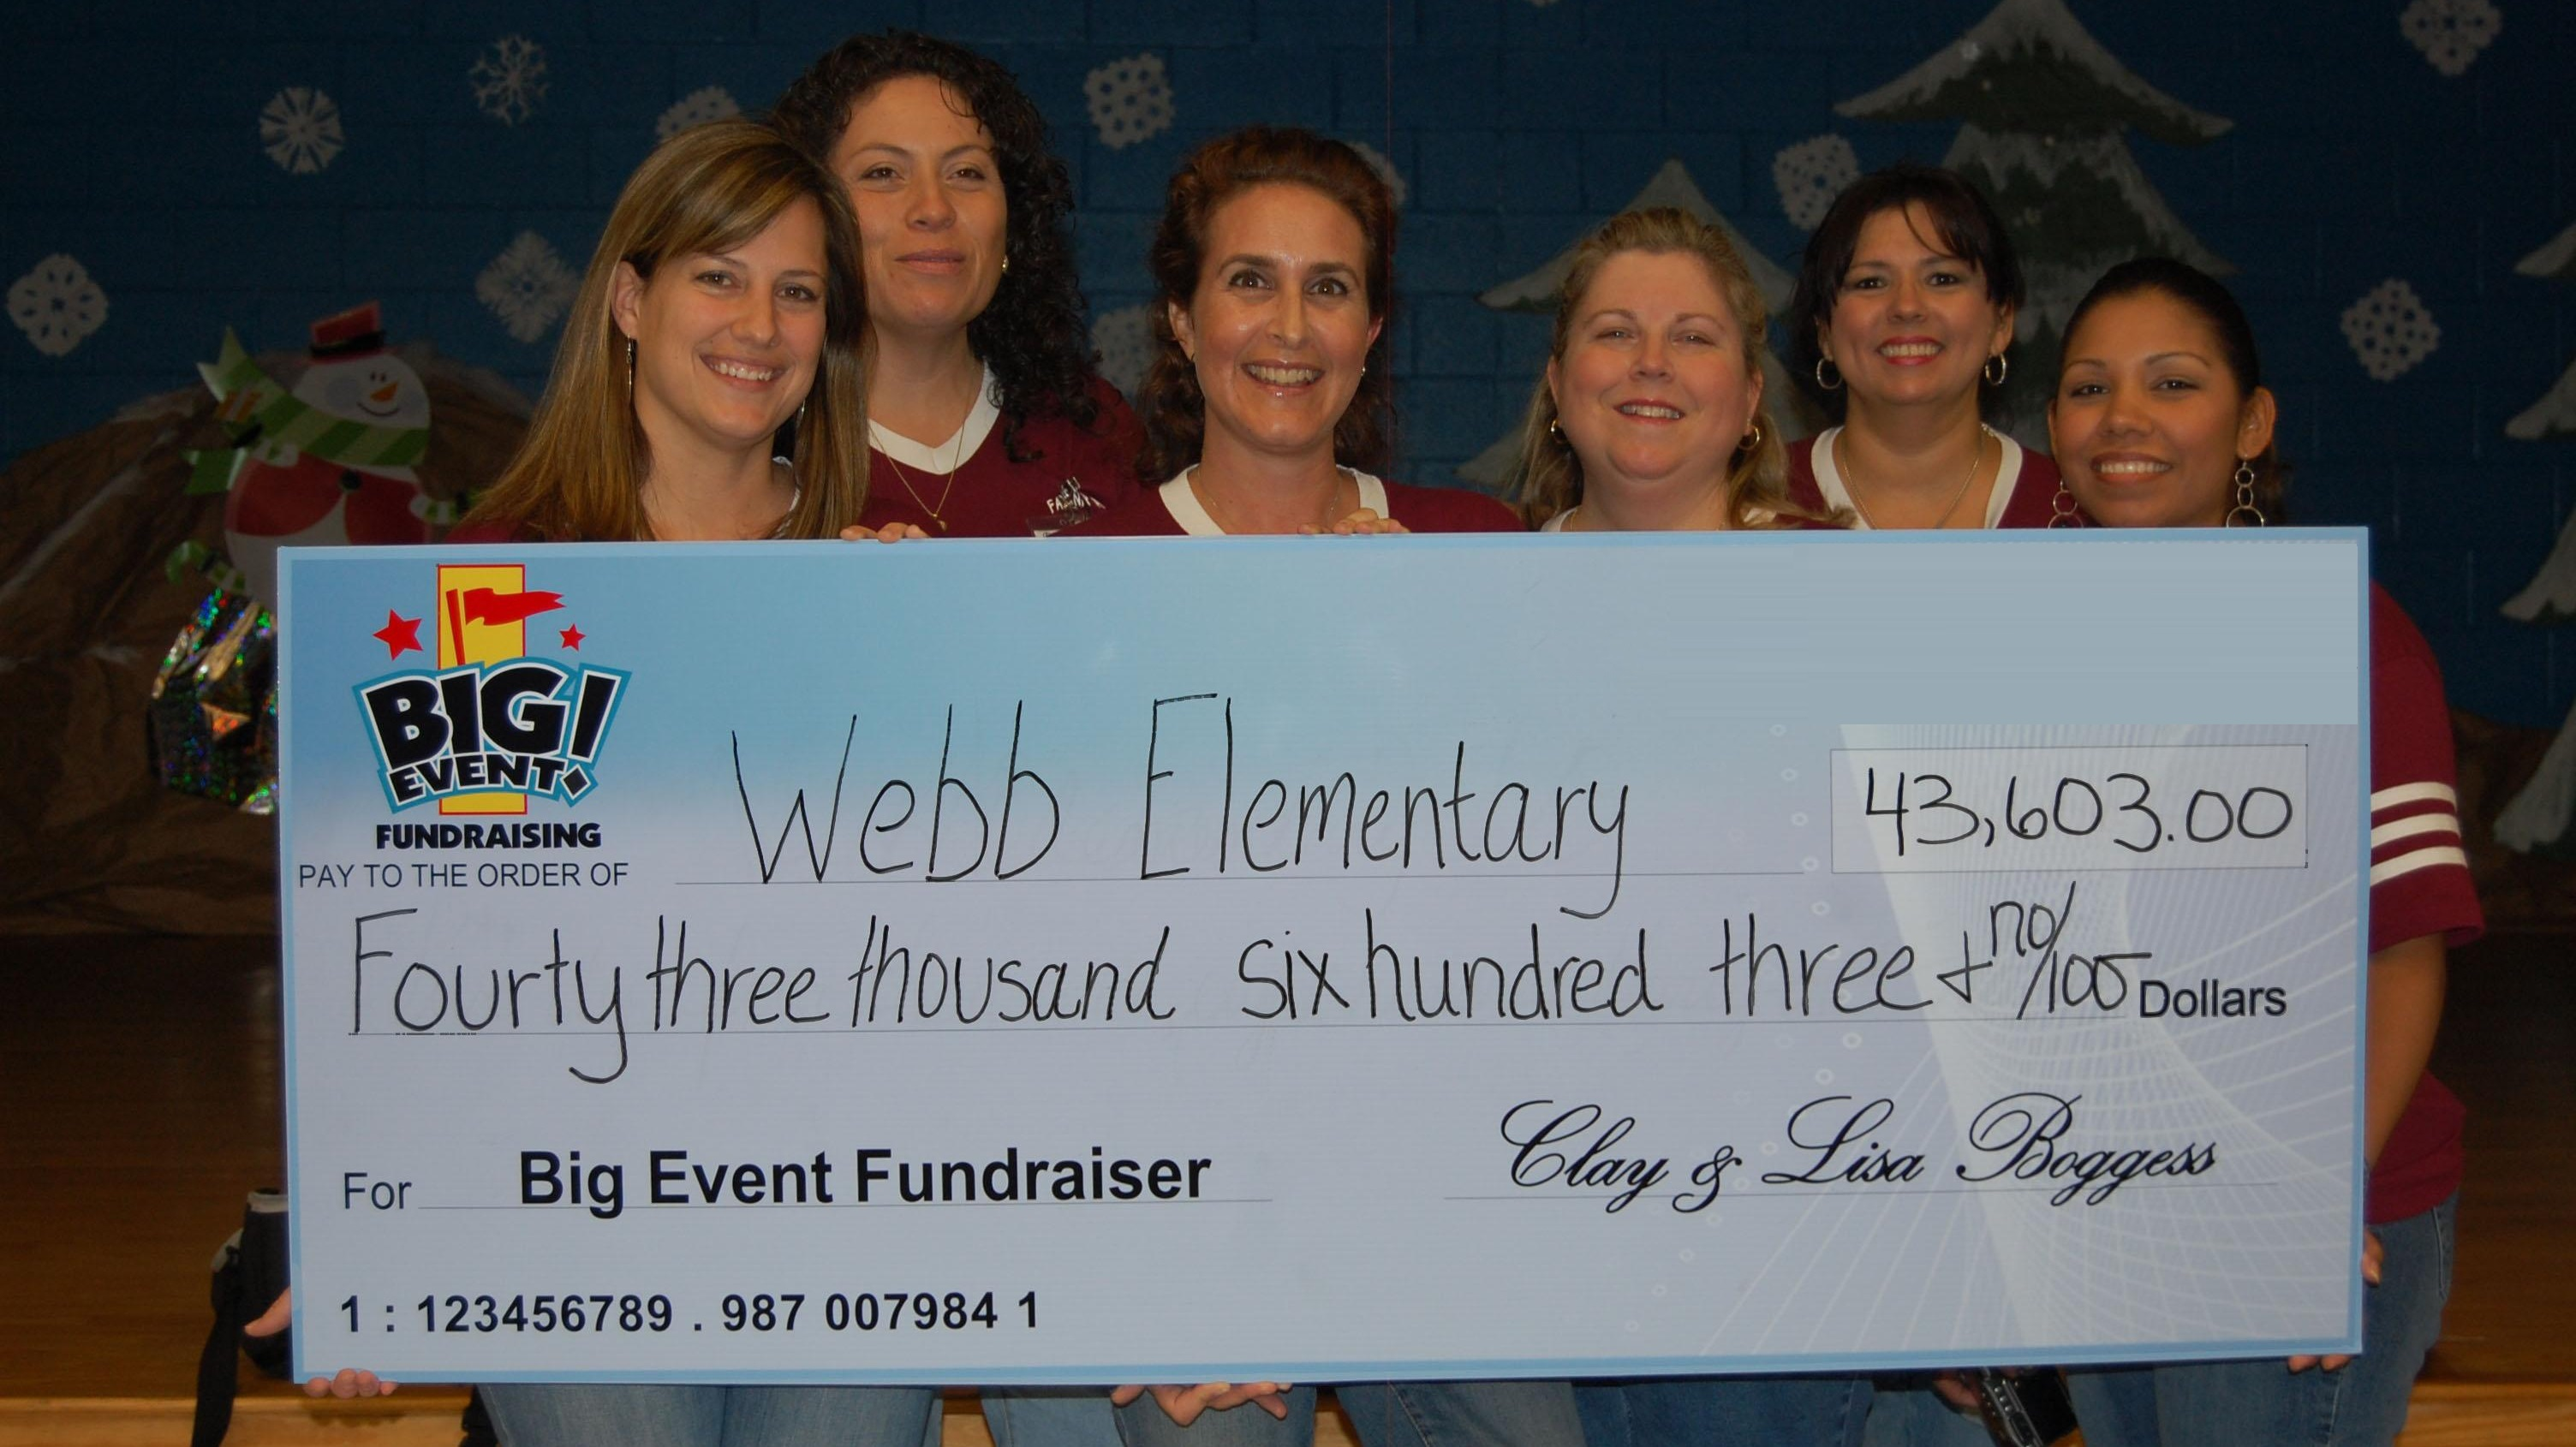 Webb Elementary School fundraising team holding check